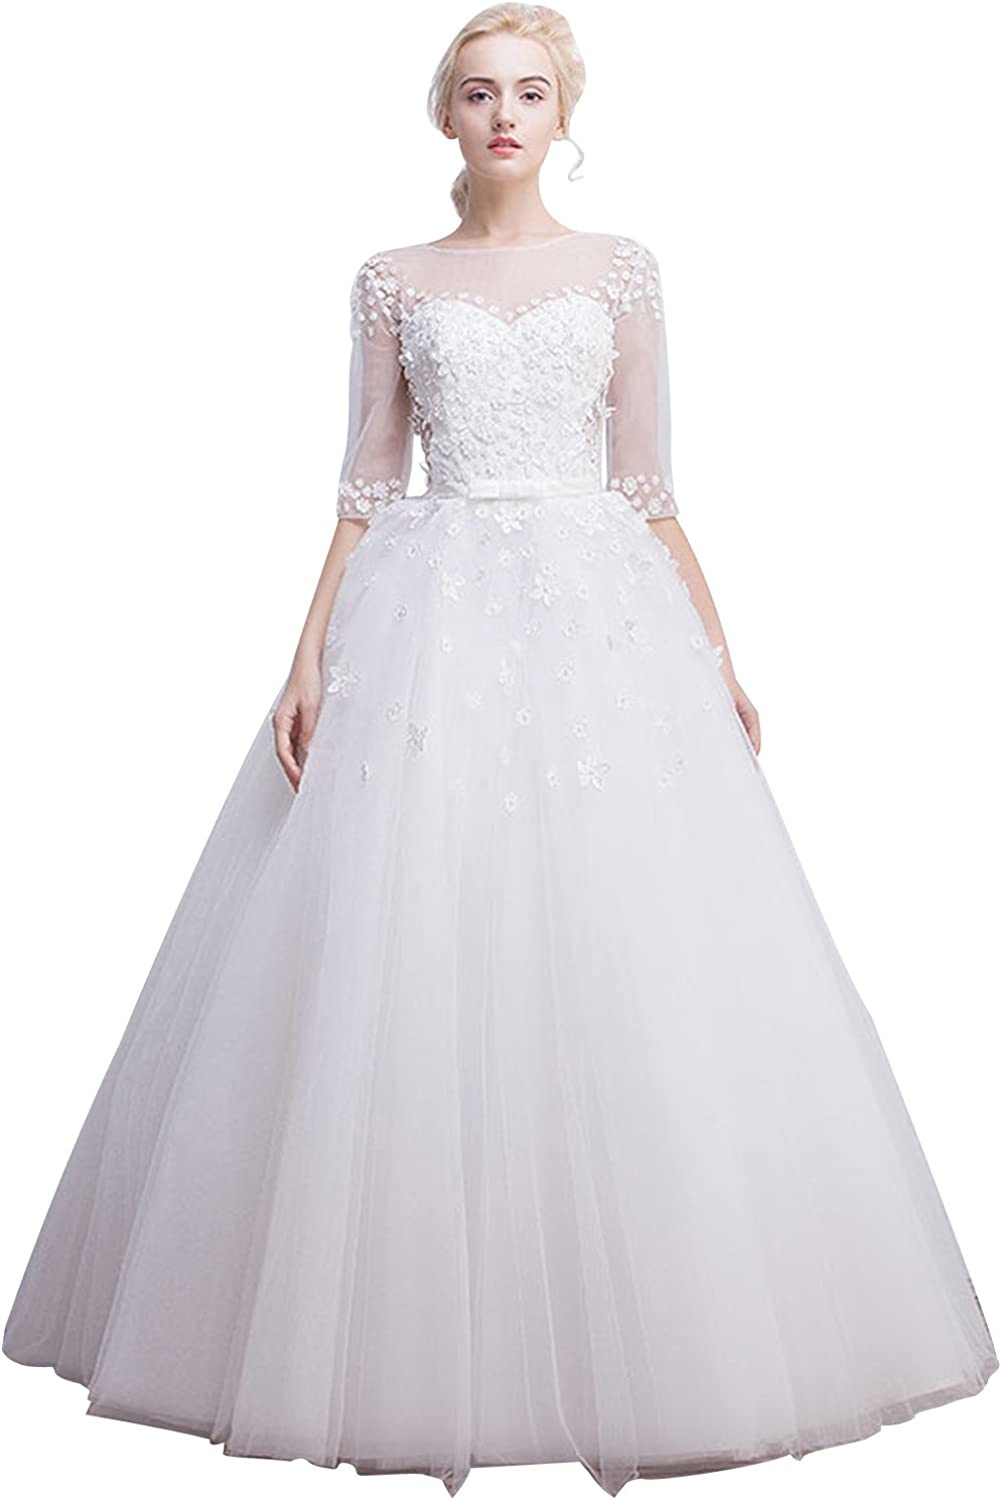 Fanciest Women's Flowers Lace Wedding Dresses with Half Sleeves Bridal Gowns White